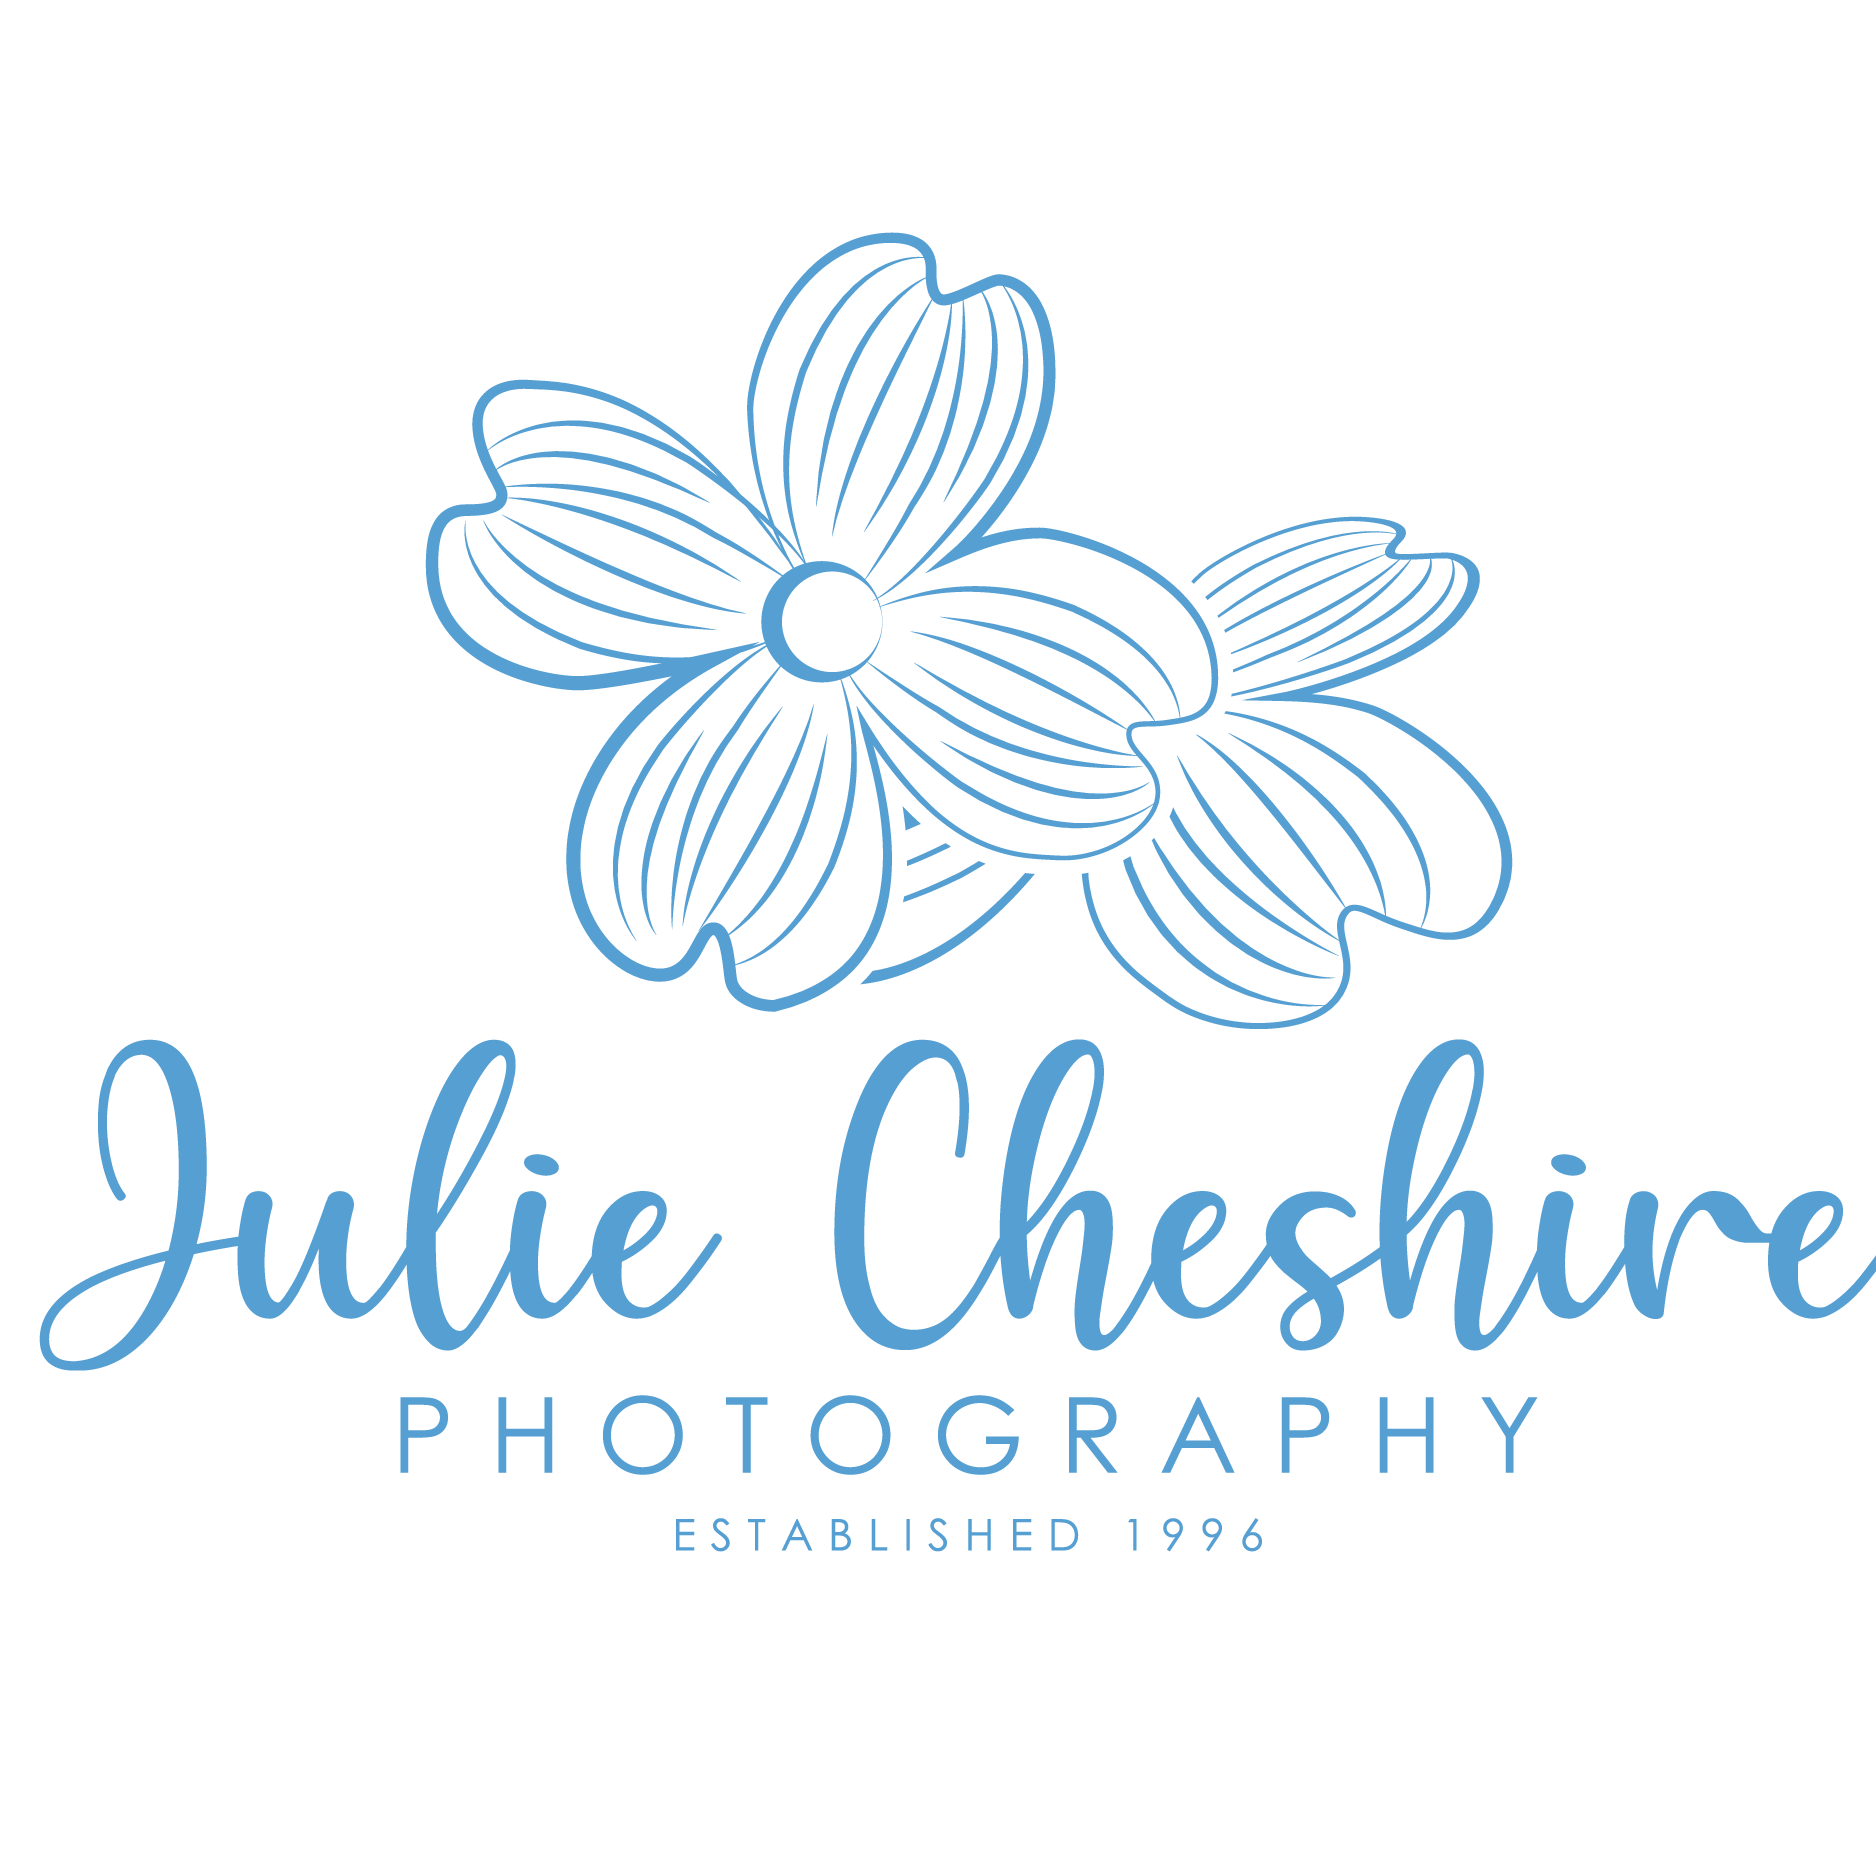 Julie Cheshire